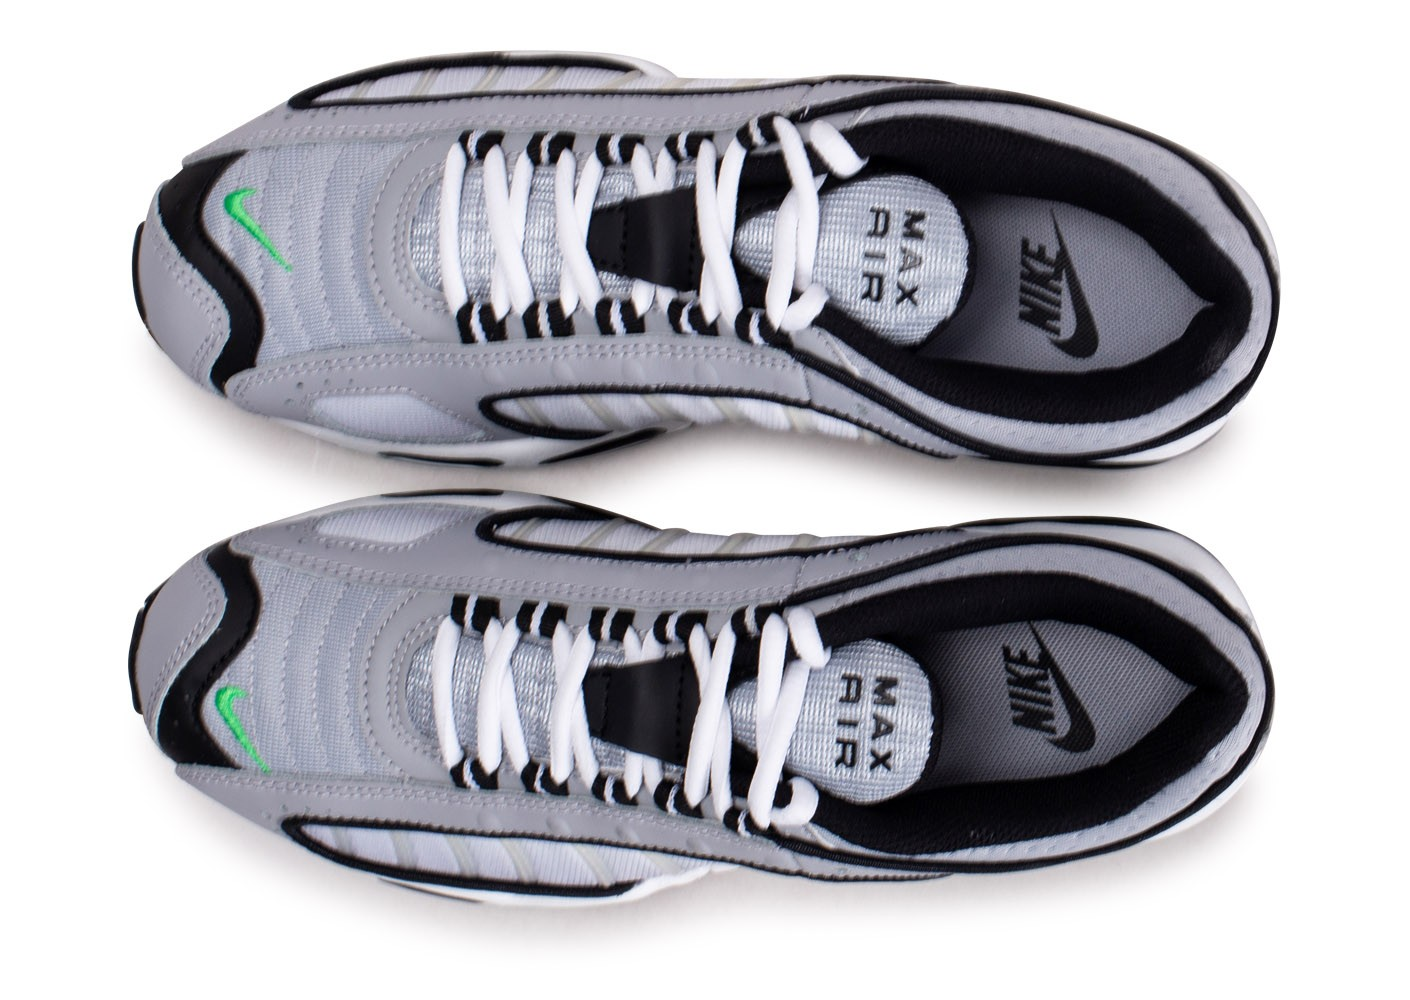 Nike Air Max Tailwind IV gris vert Chaussures Baskets